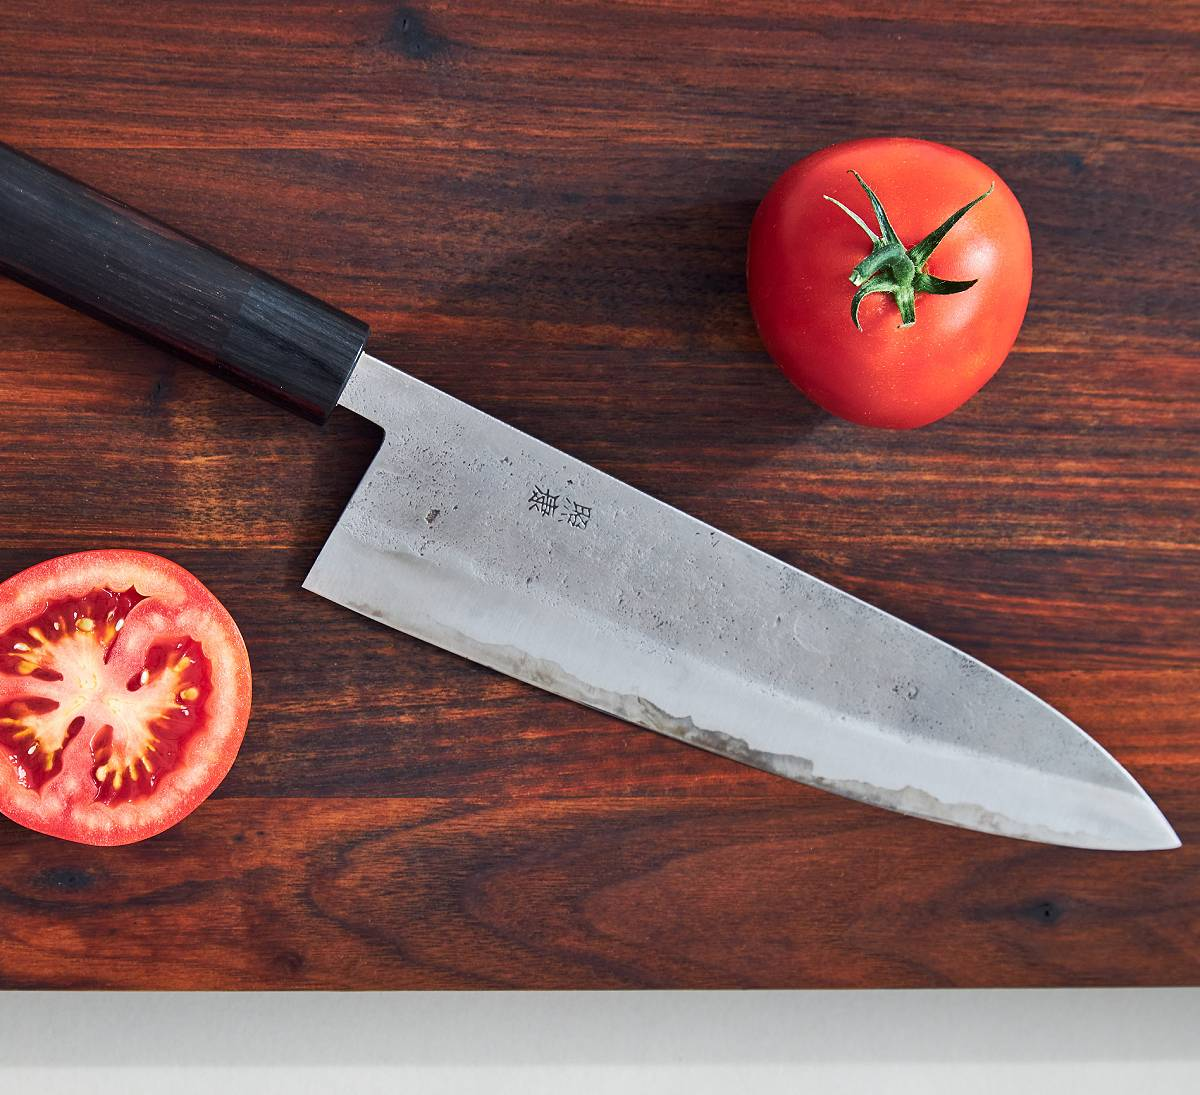 Dirty Chefs Knife